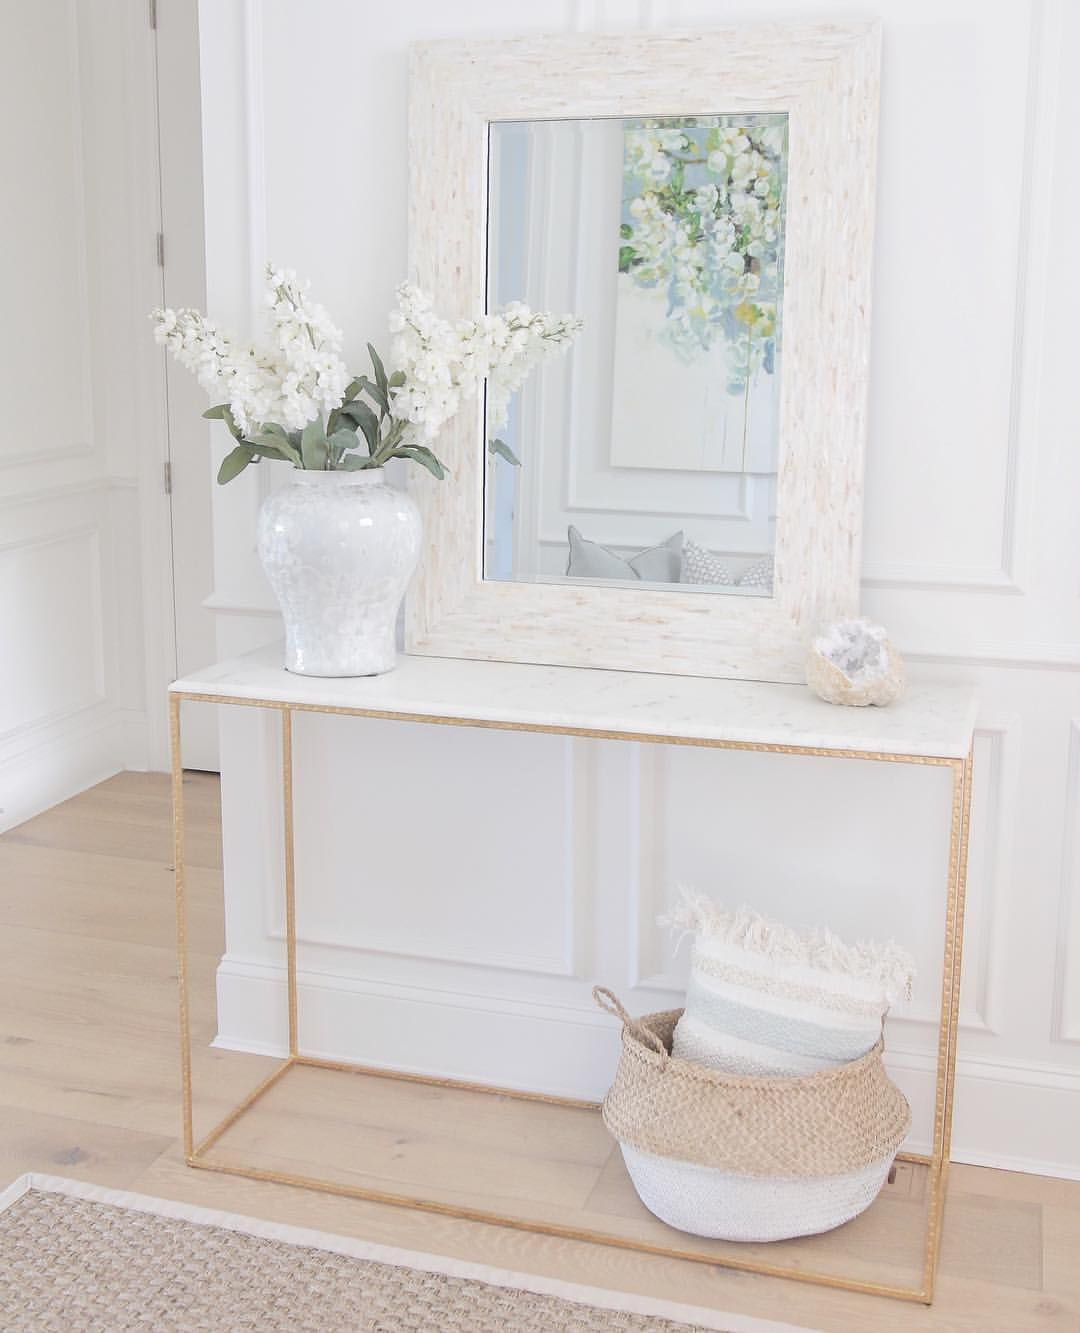 578 Likes 21 Comments Sonja Jshomedesign On Instagram I M Loving This Mother Of Pearl Entryway Table Decor Entrance Table Decor Entryway Console Table